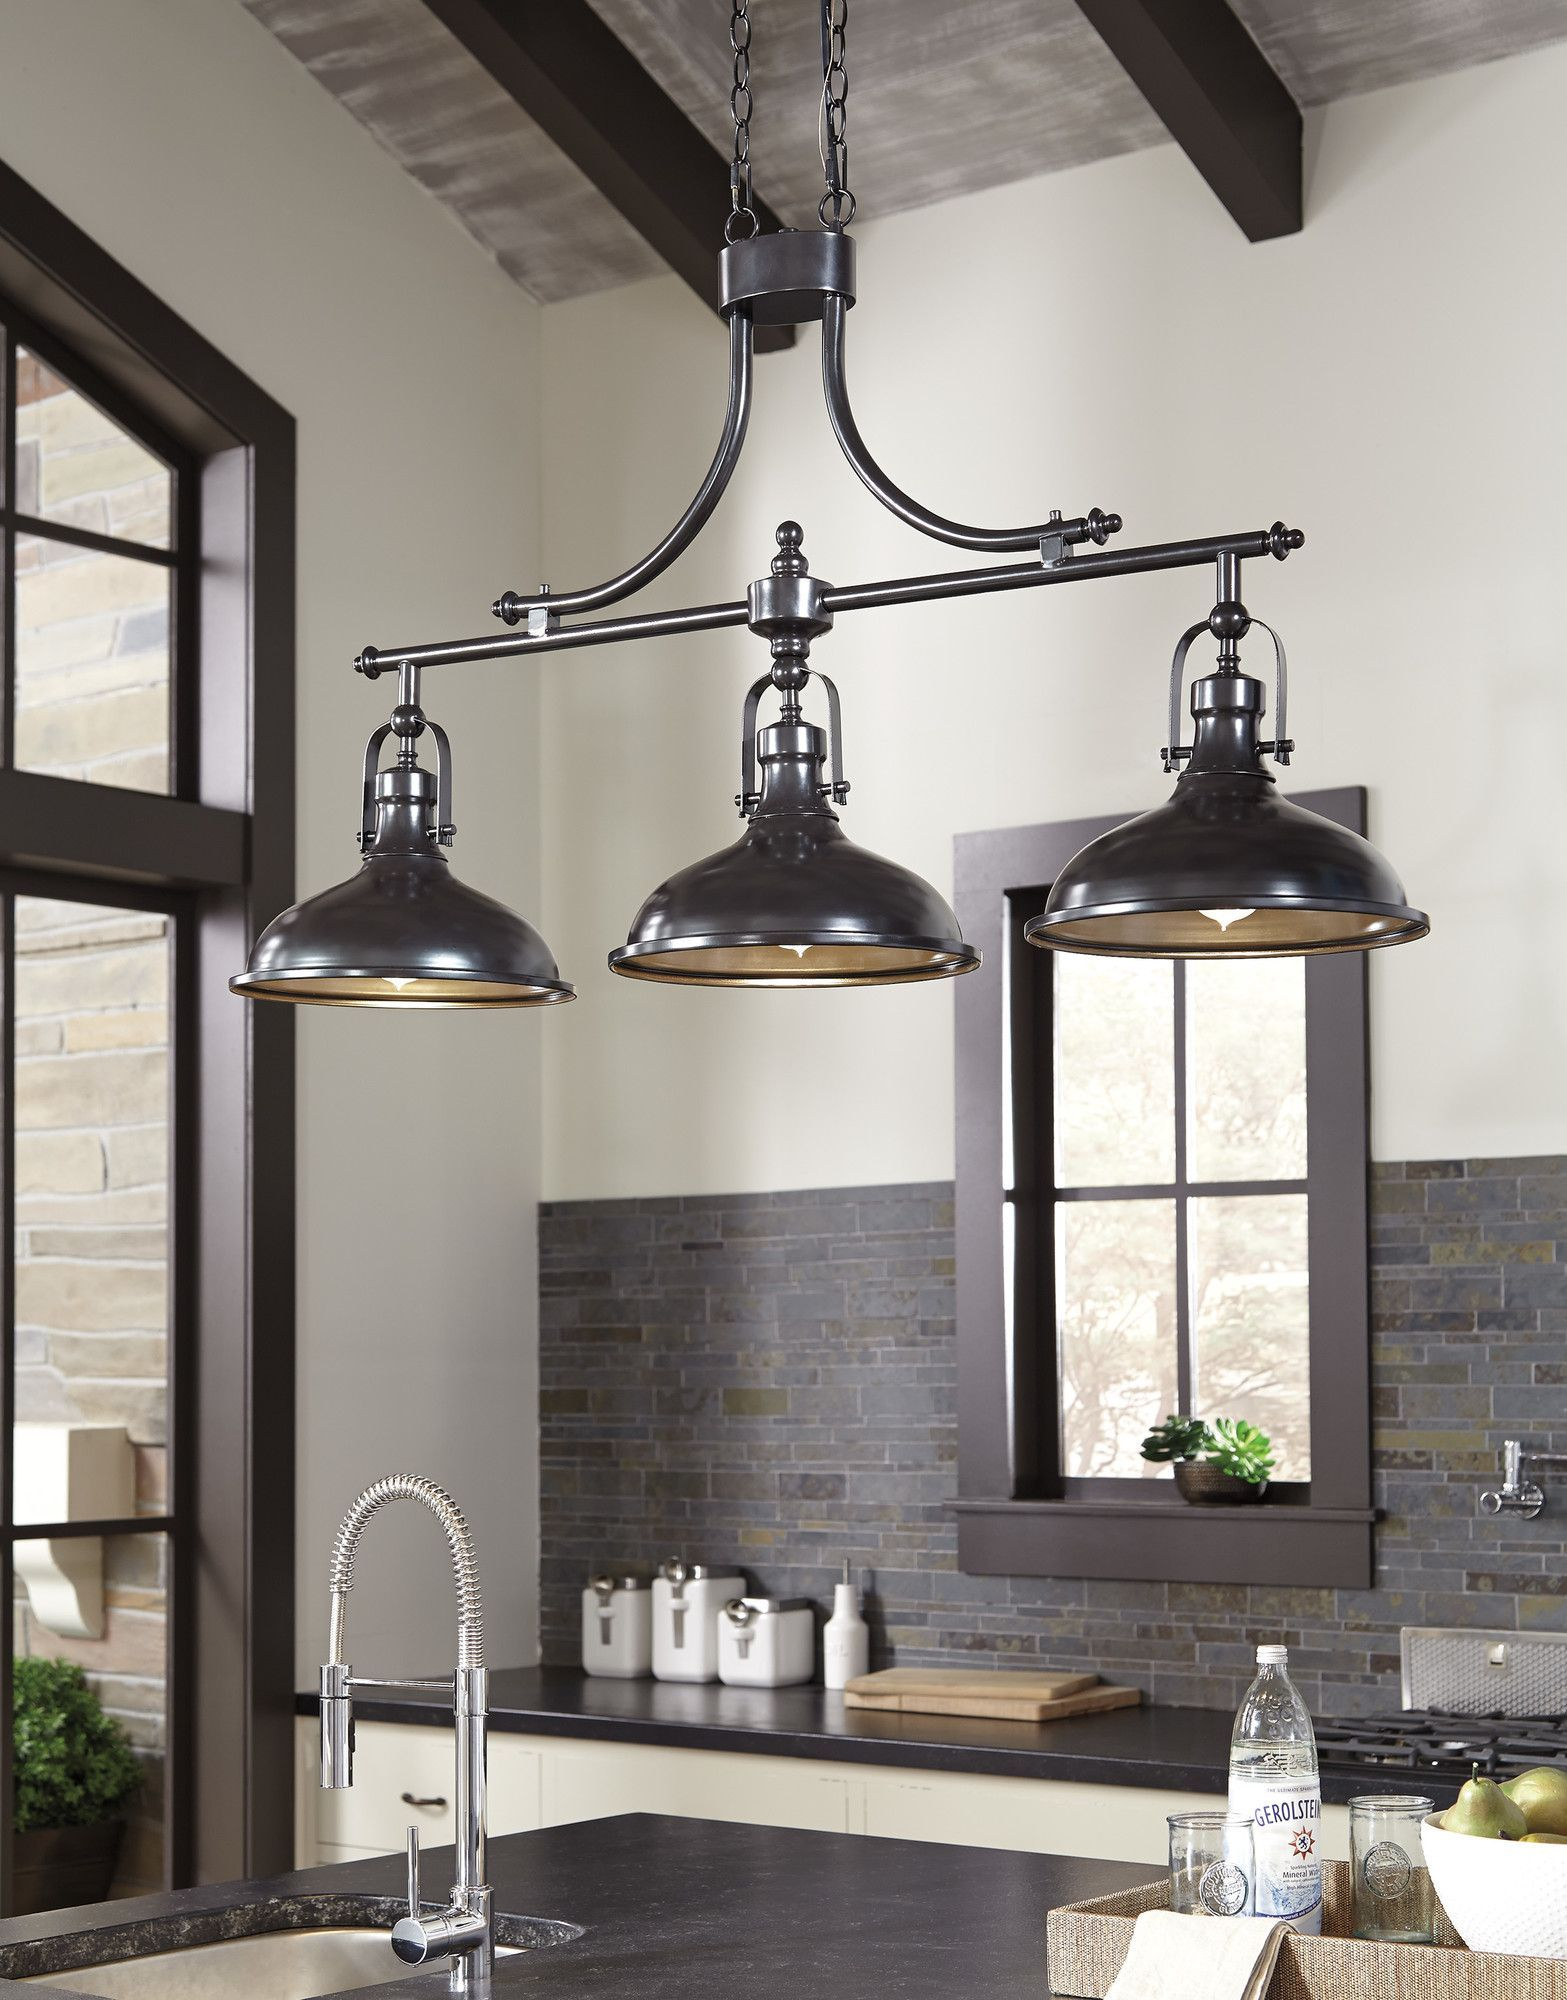 Joseph 3 light kitchen island pendant reviews joss main joseph 3 light kitchen island pendant reviews joss main aloadofball Choice Image